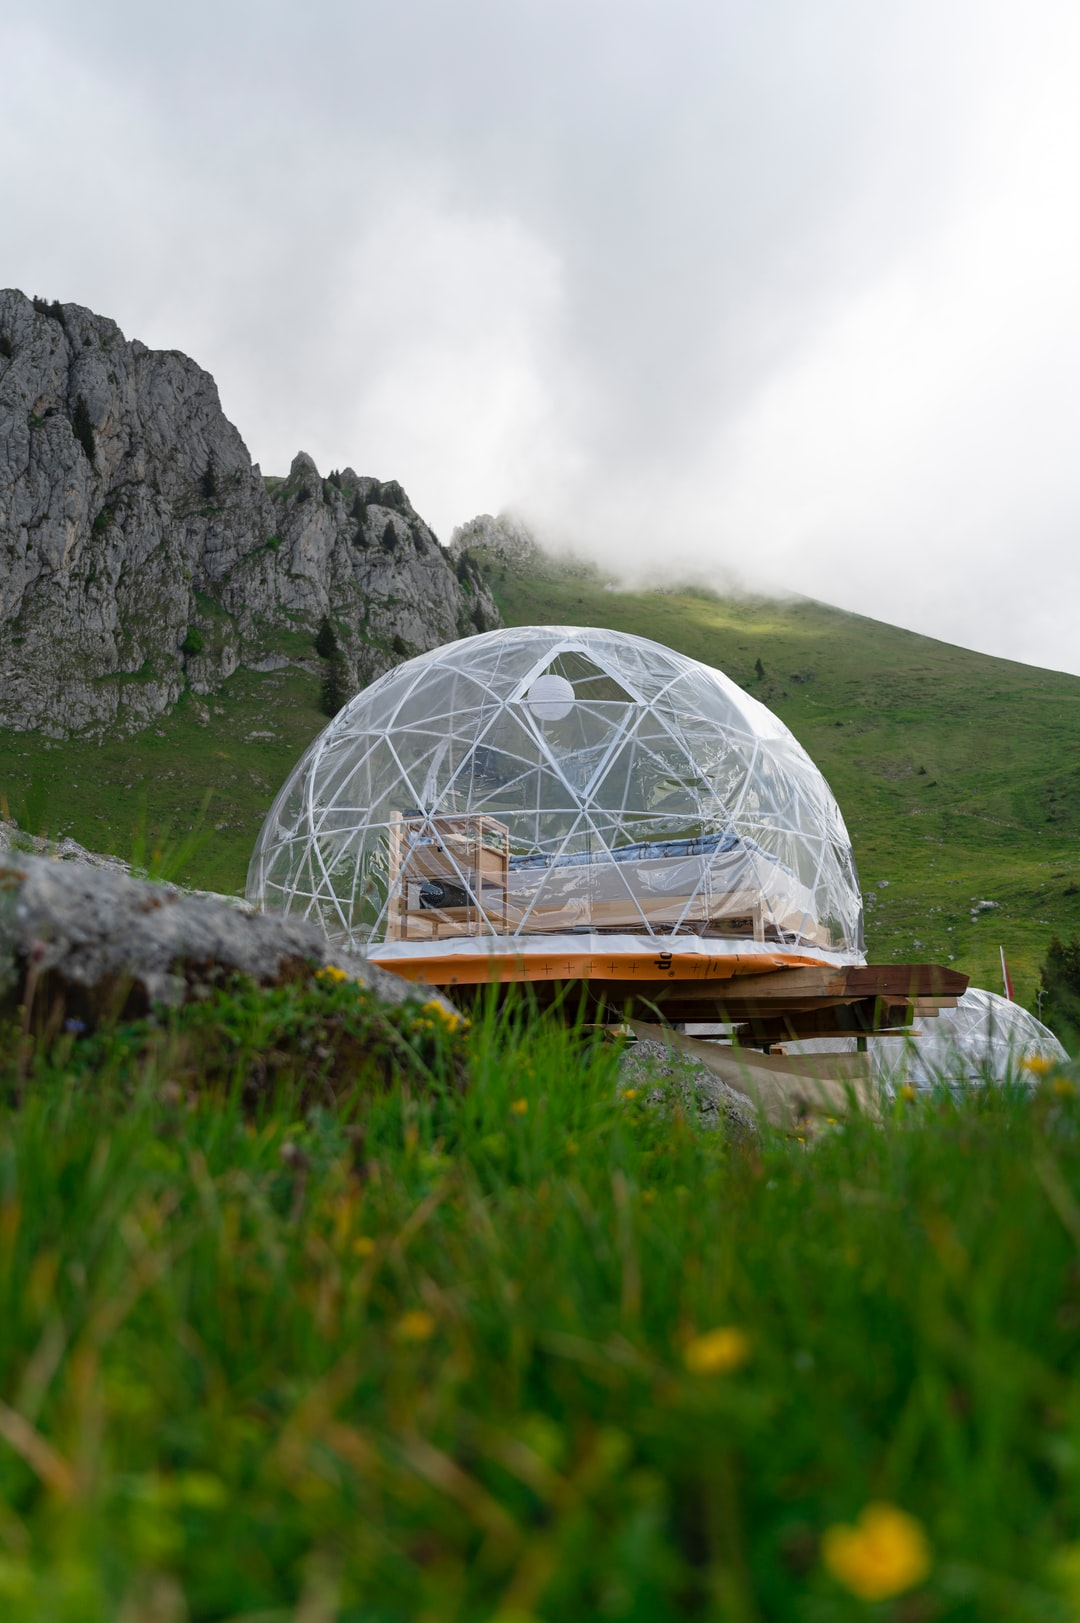 Difference between inflatable and VIEWSKY bubble tents